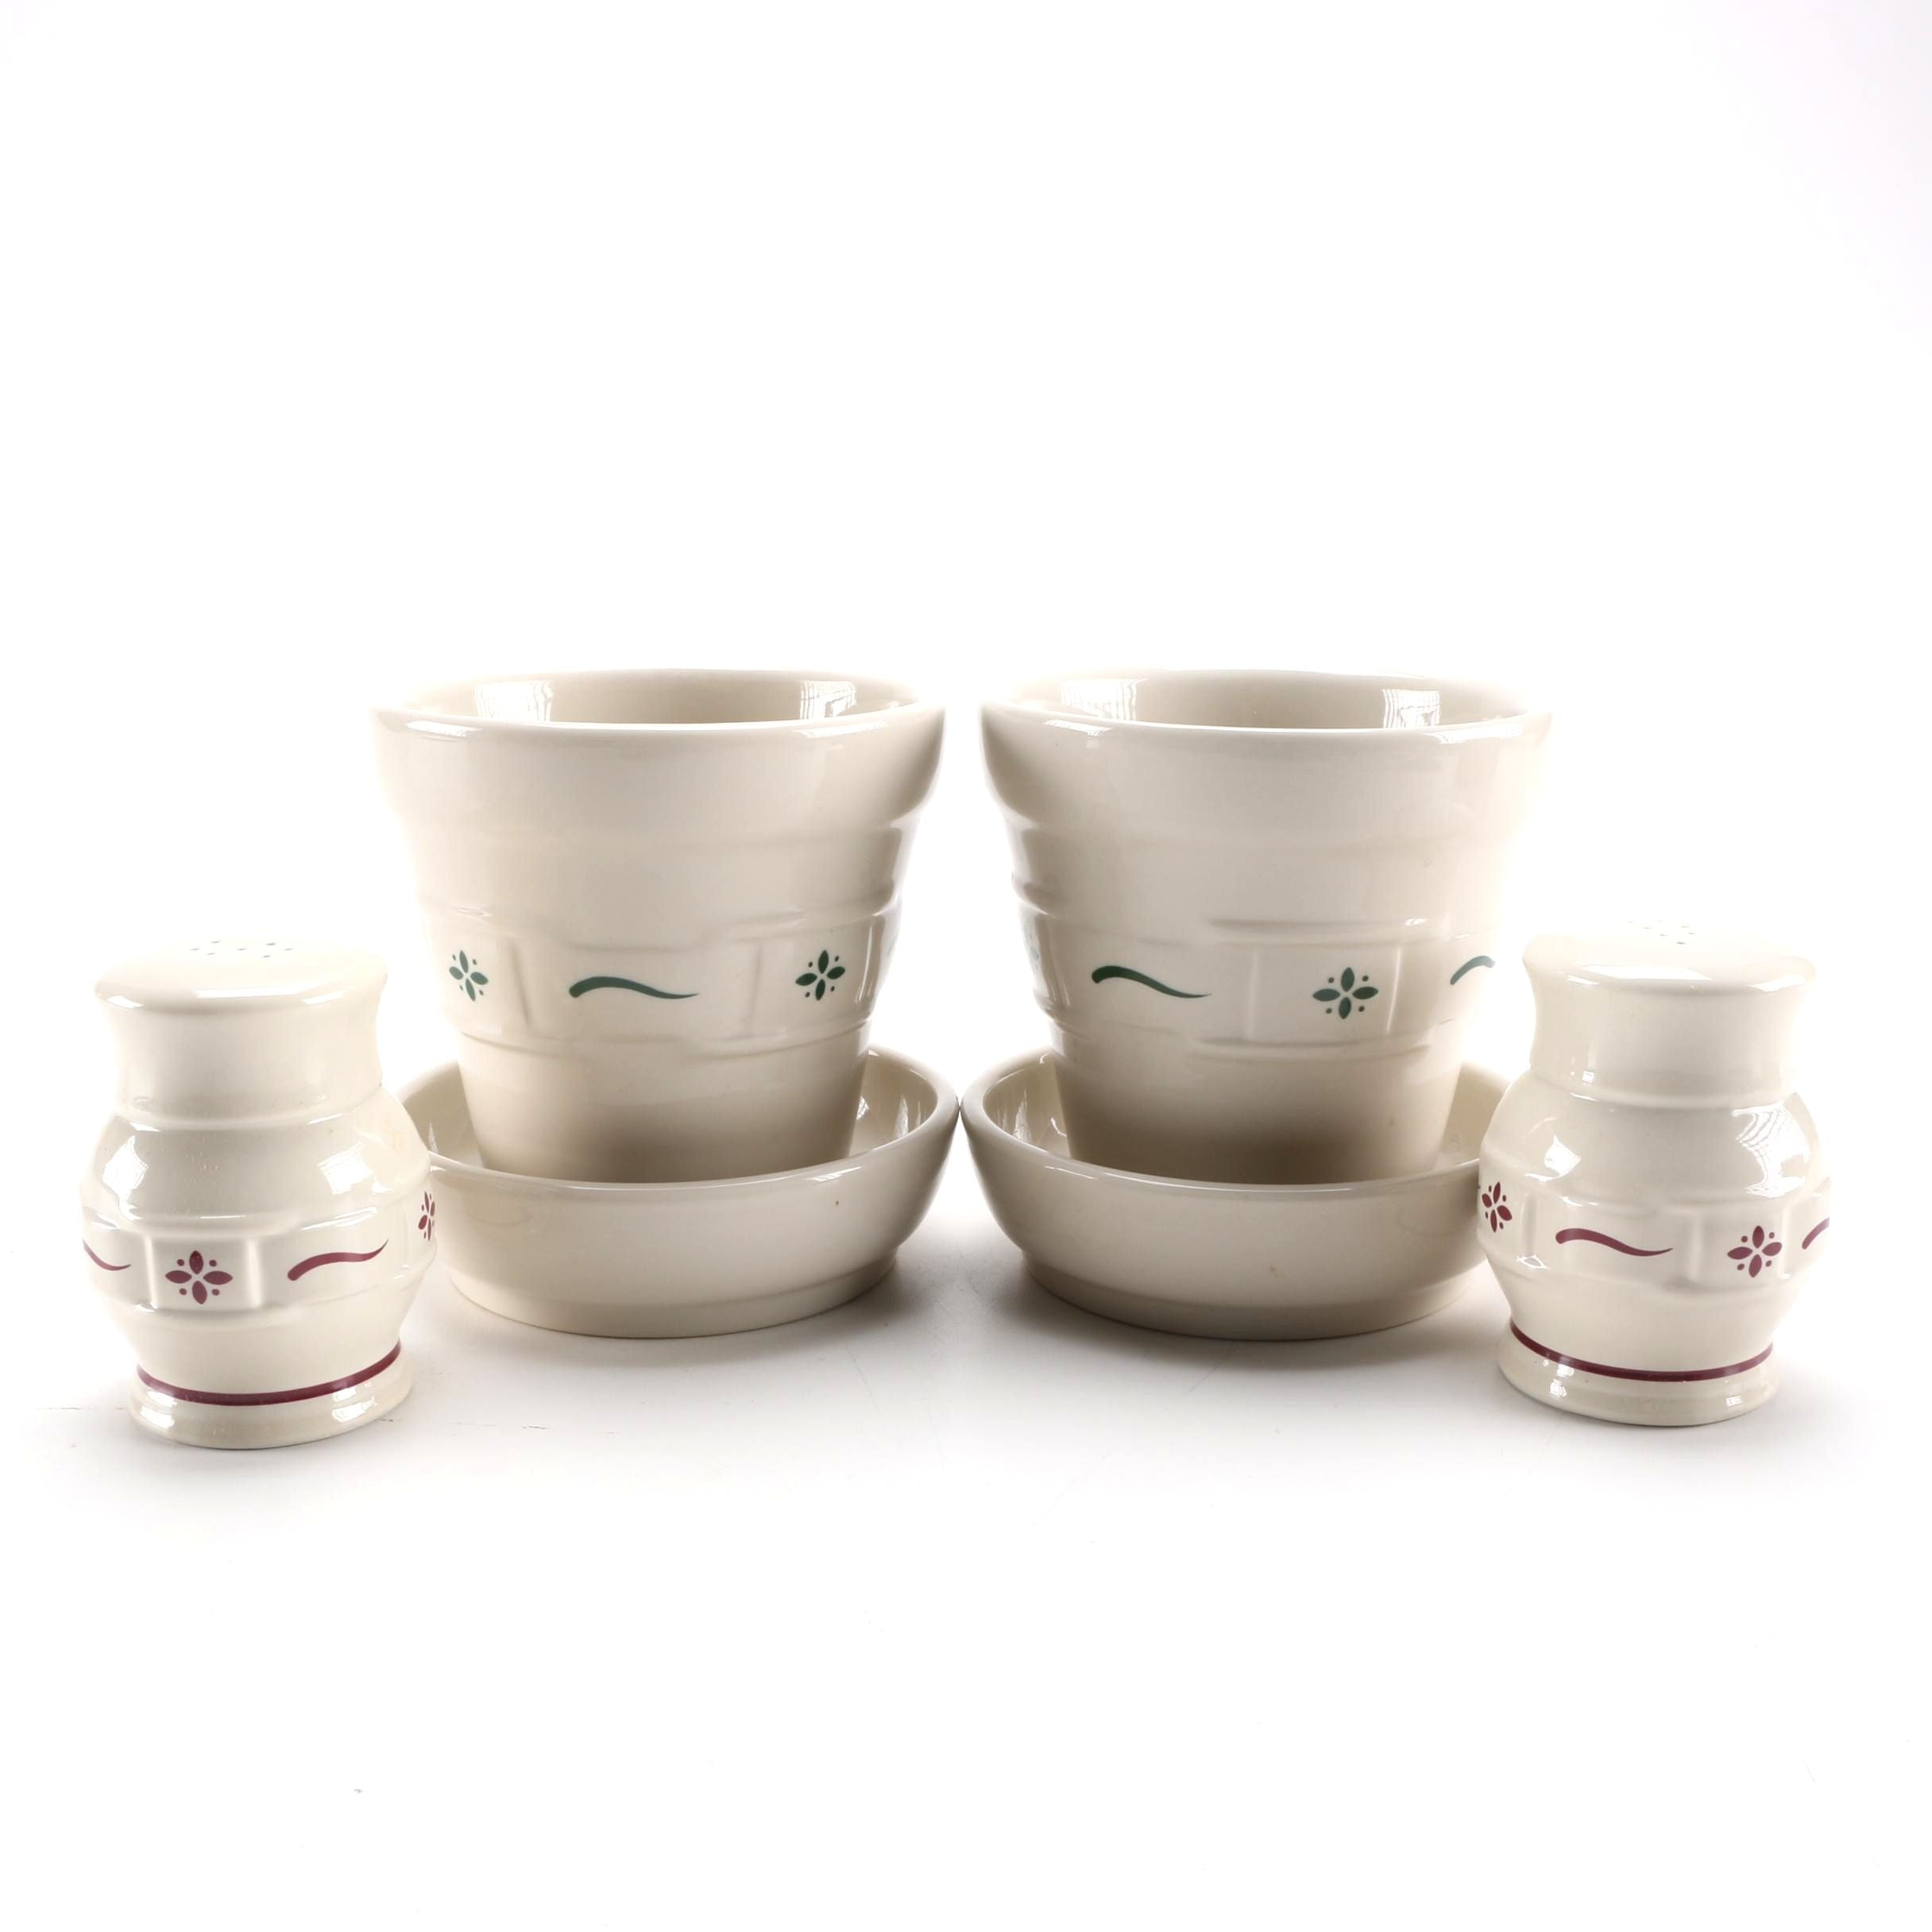 Longaberger Planters and Salt and Pepper Shakers